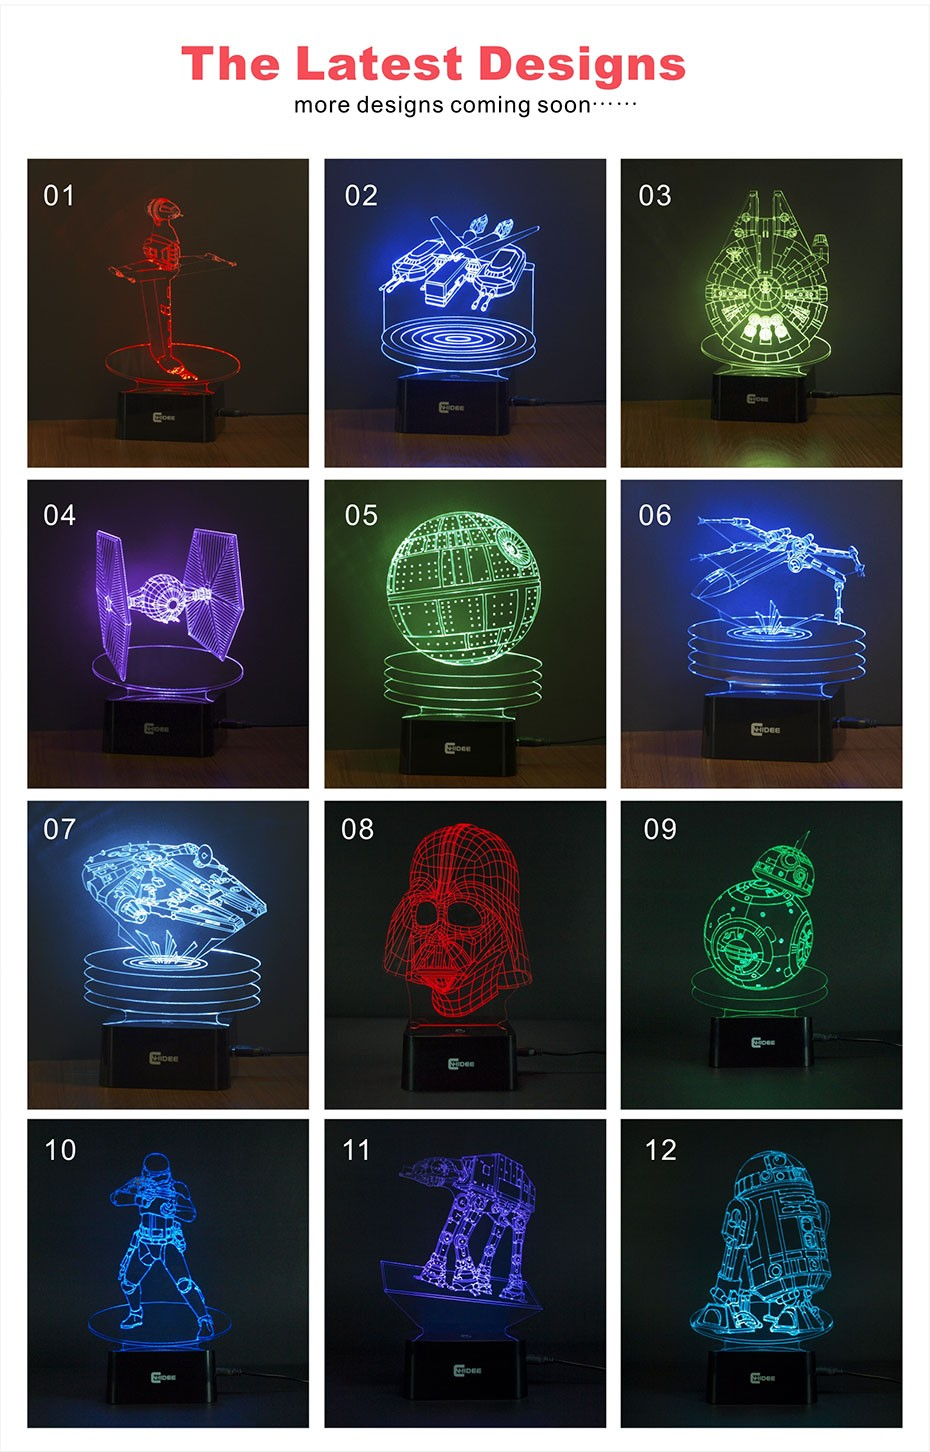 3D Led Lampara Futbol 7 Colors Changing Night Lights as Home Decor Desk Nightlight USB Table Lamps for Football Fans (1)